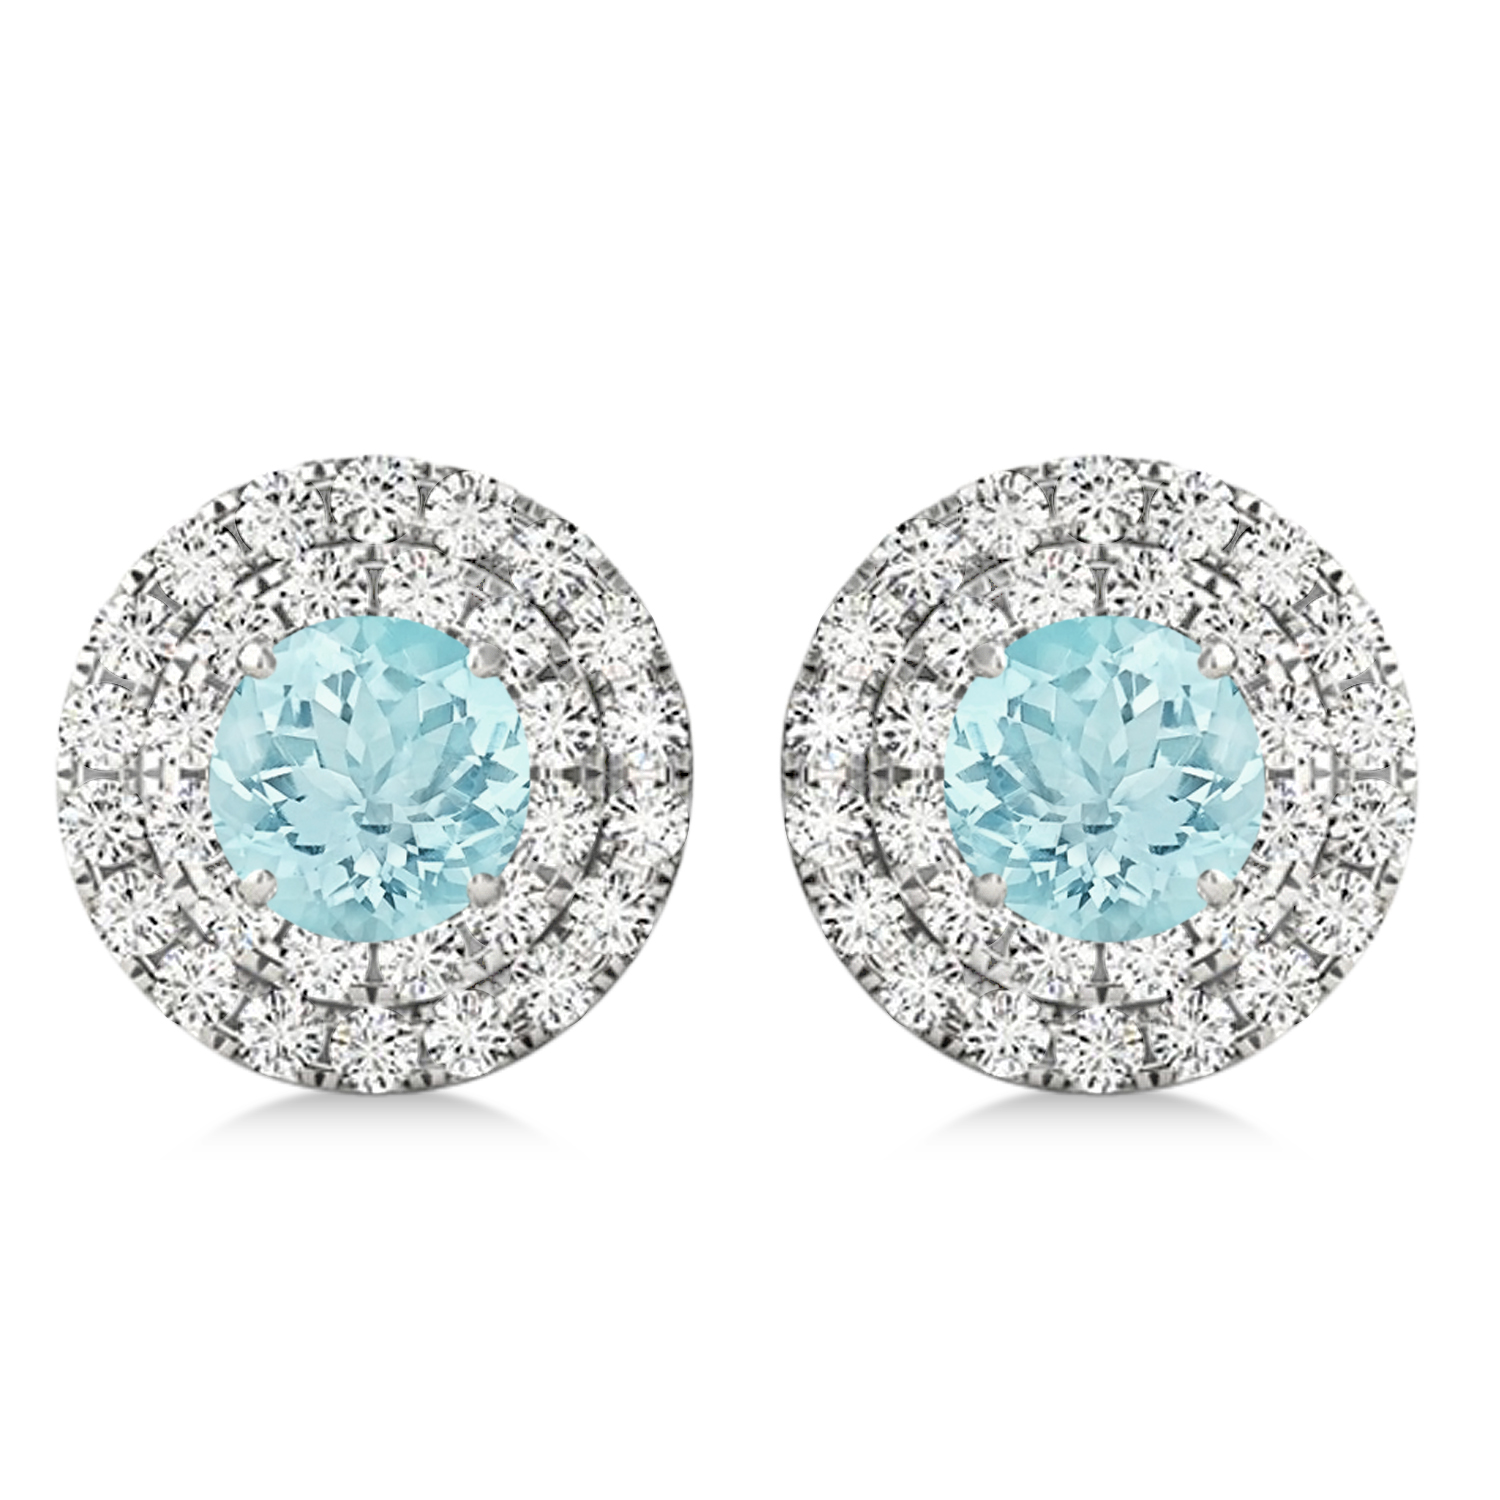 Round Double Halo Diamond & Aquamarine Earrings 14k White Gold 1.35ct